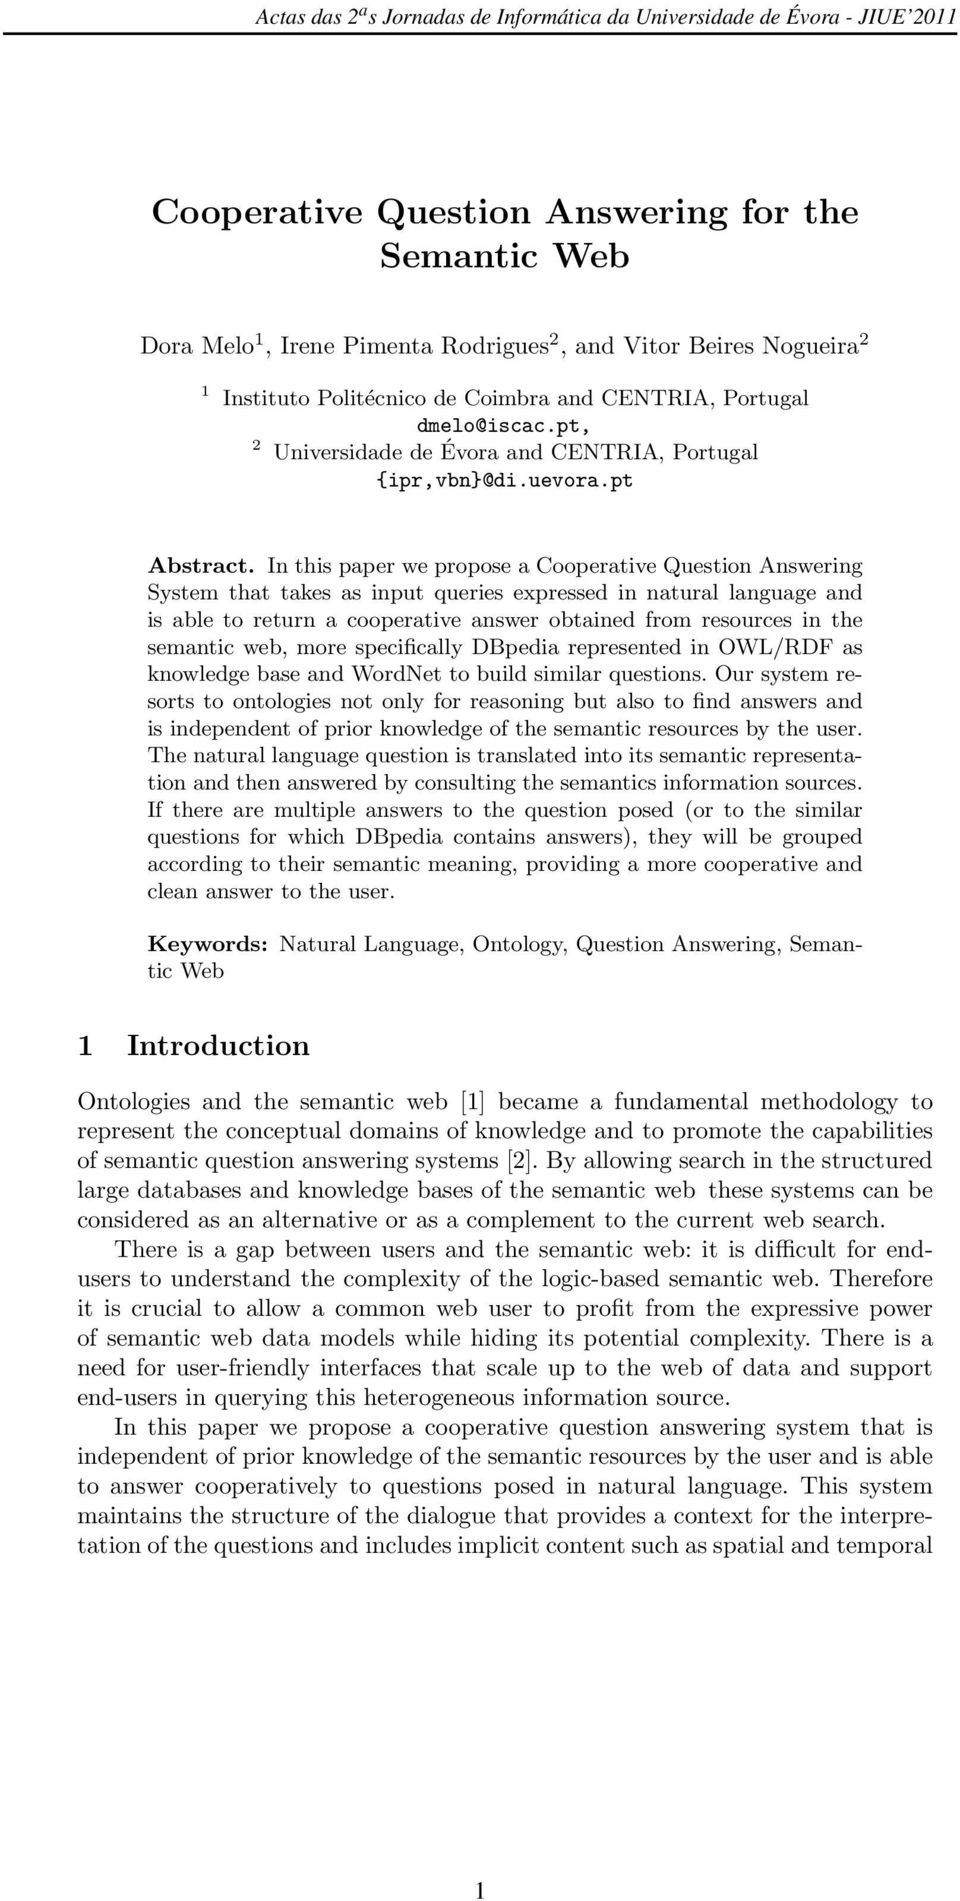 In this paper we propose a Cooperative Question Answering System that takes as input queries expressed in natural language and is able to return a cooperative answer obtained from resources in the